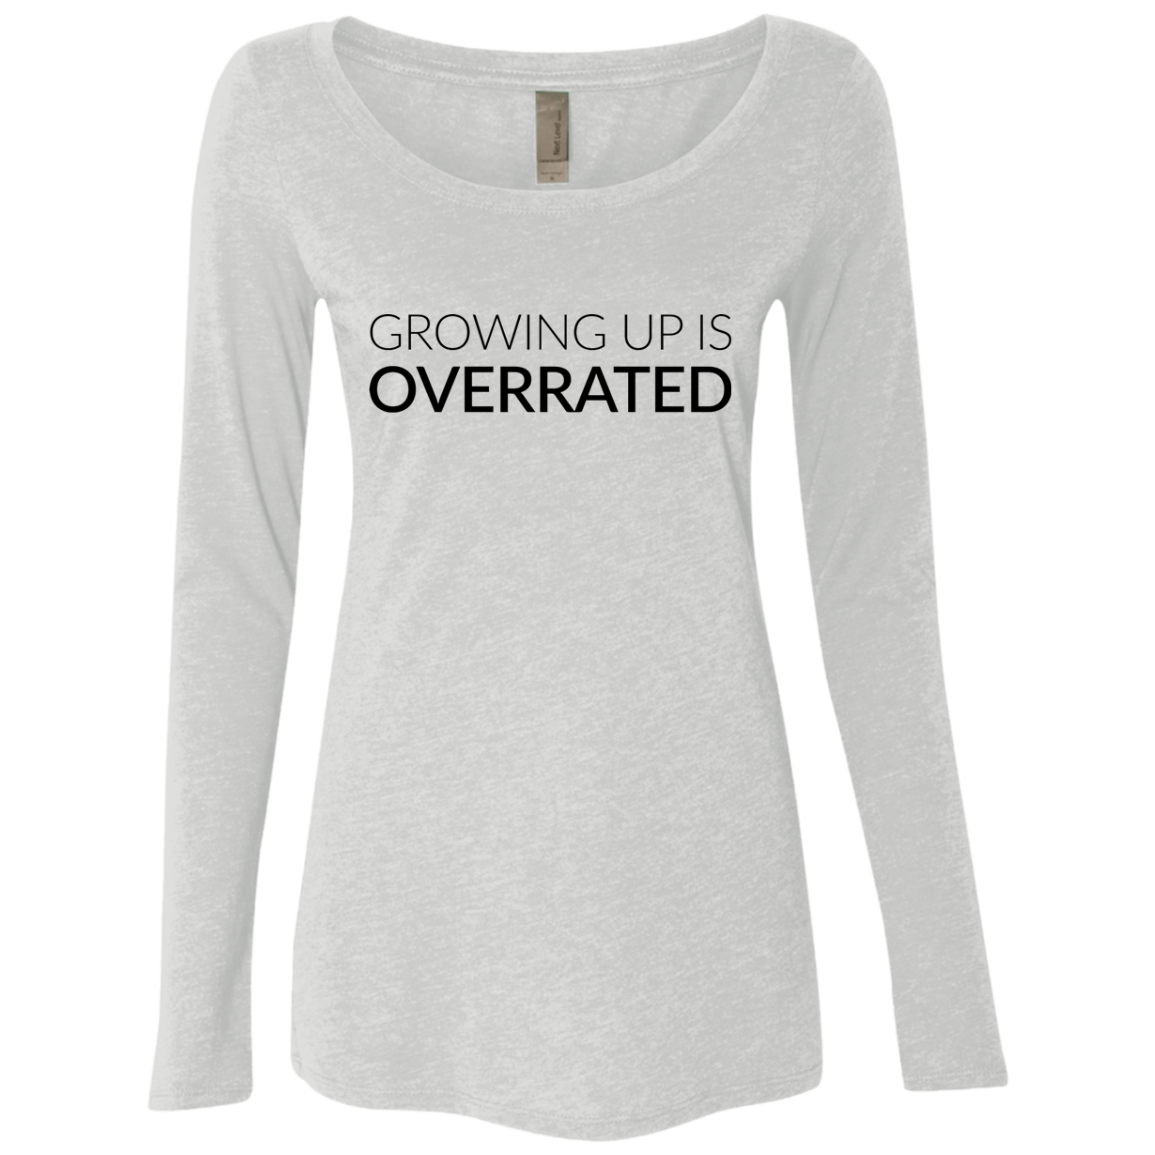 Growing Up is Overrated Women's Long Sleeve Tee